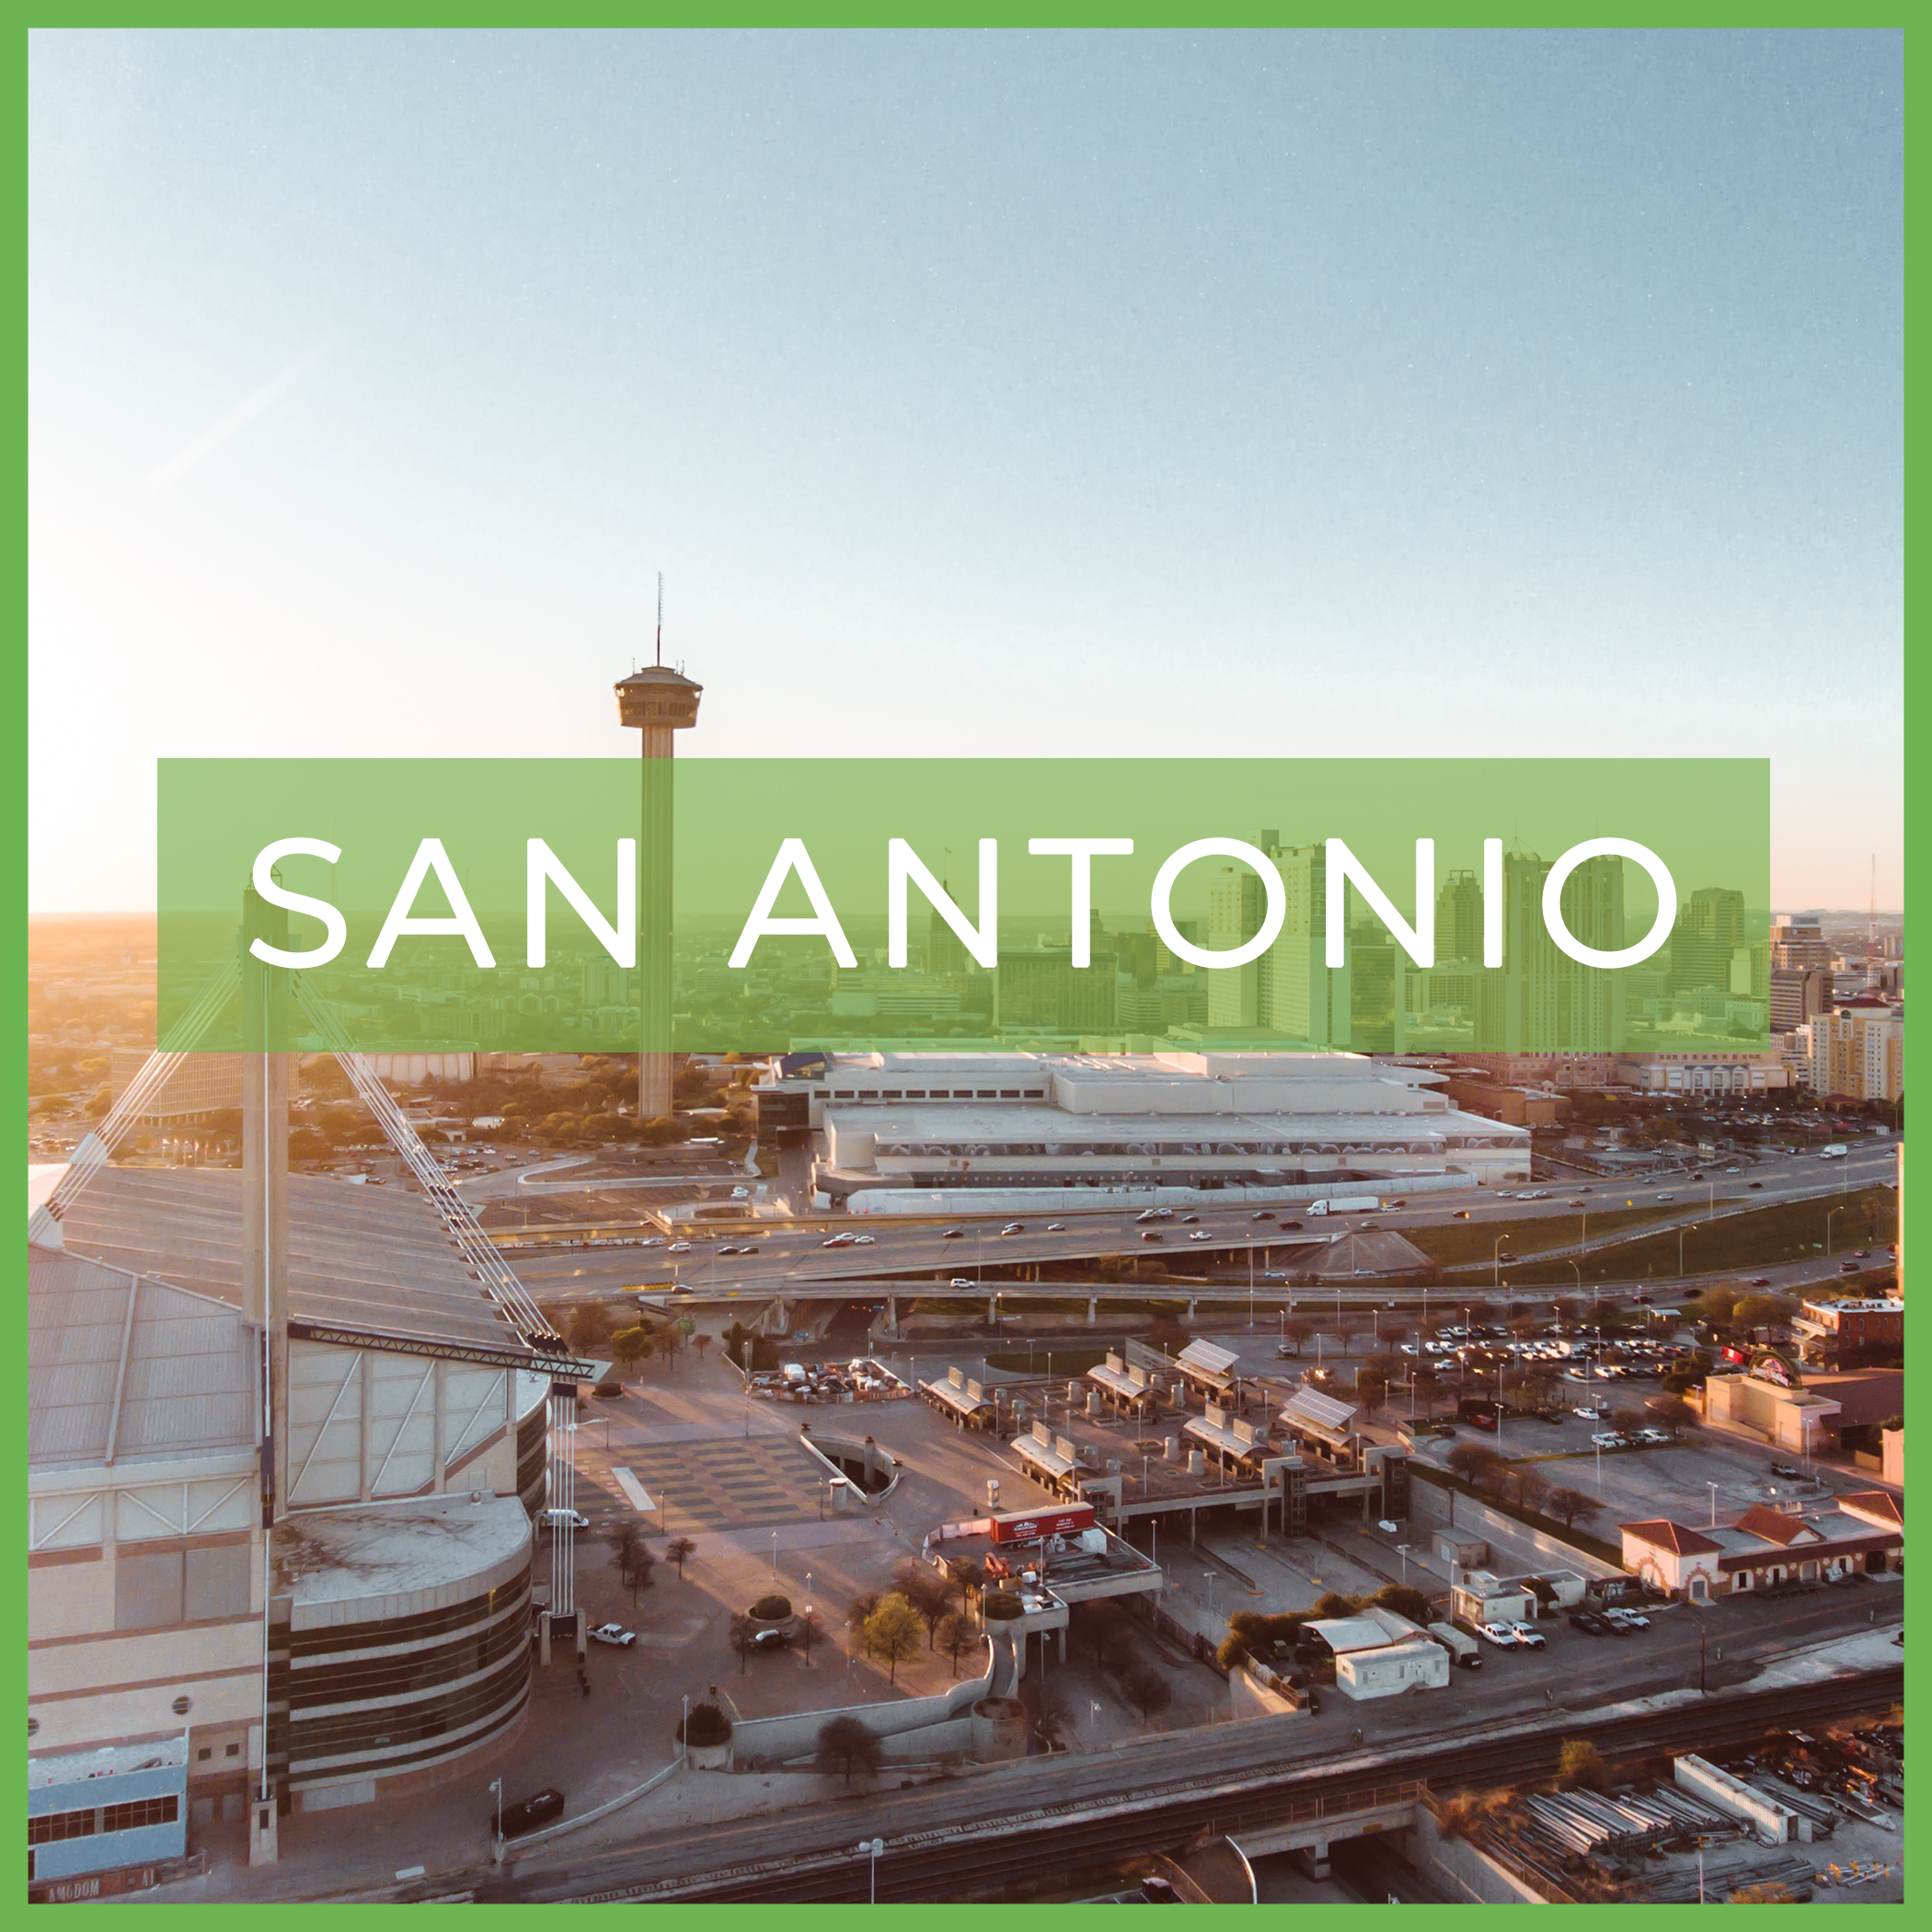 aba-therapy-center-locations-san-antonio-texas-learning-center-cultivate.png